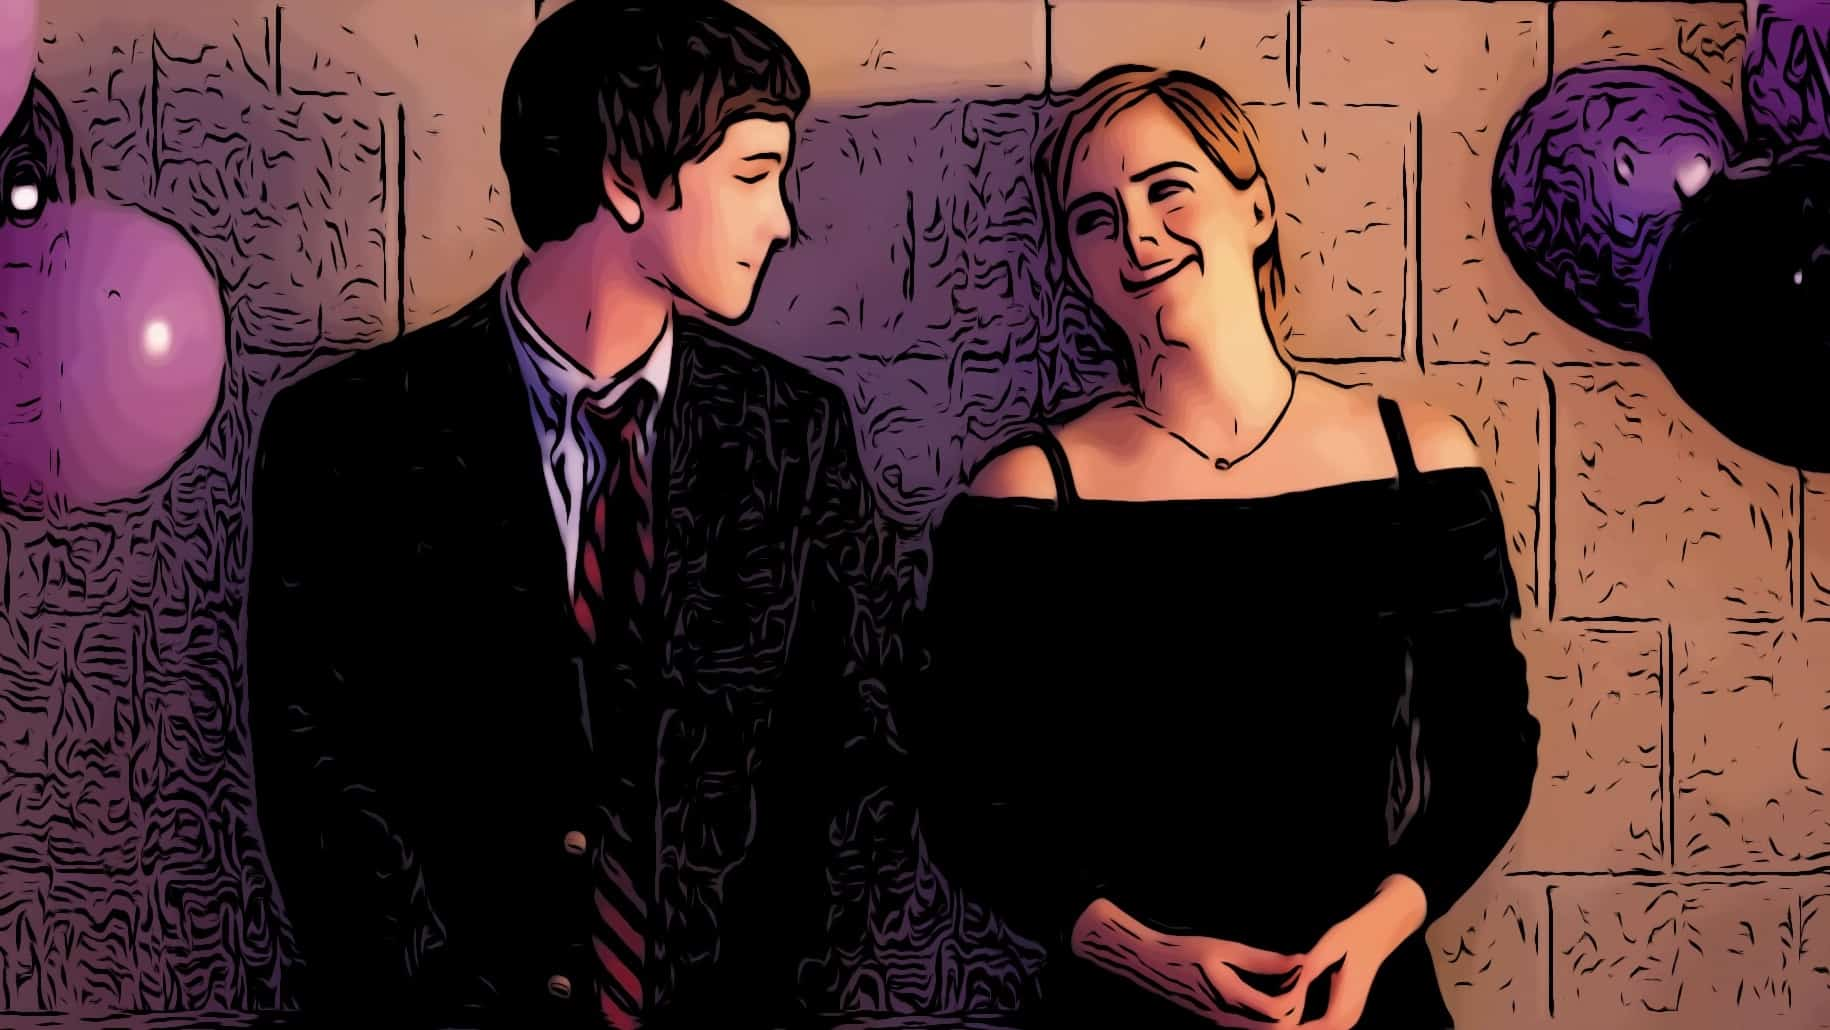 Scene from Perks Of Being A Wallflower for movies like Perks Of Being A Wallflower post.